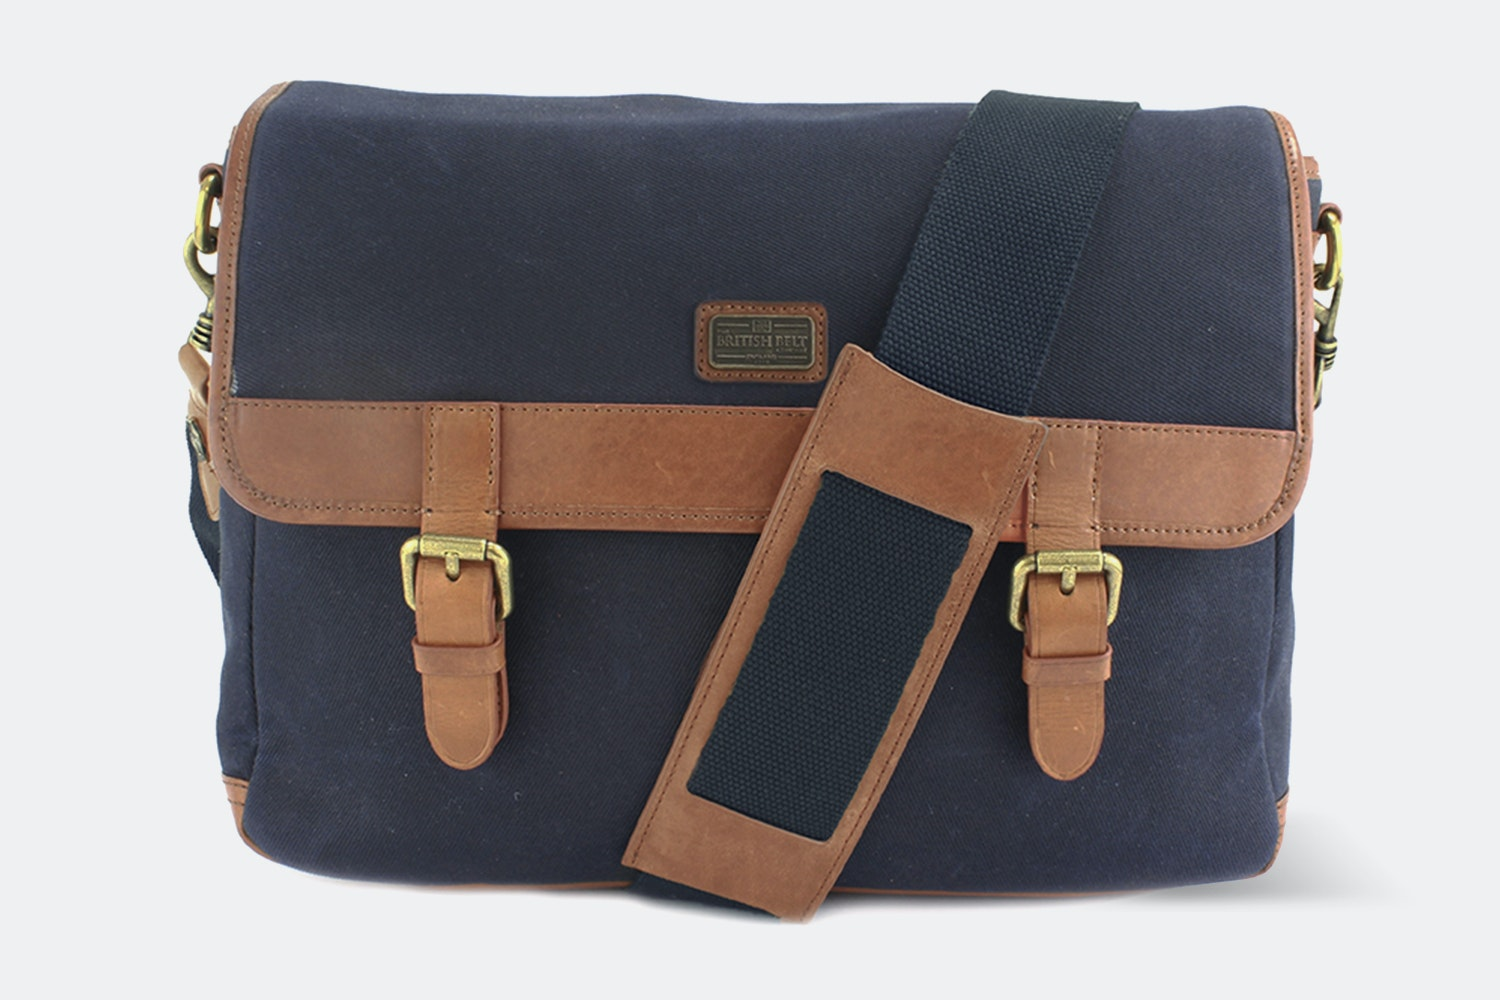 The British Belt Co. Langdale Messenger Bag